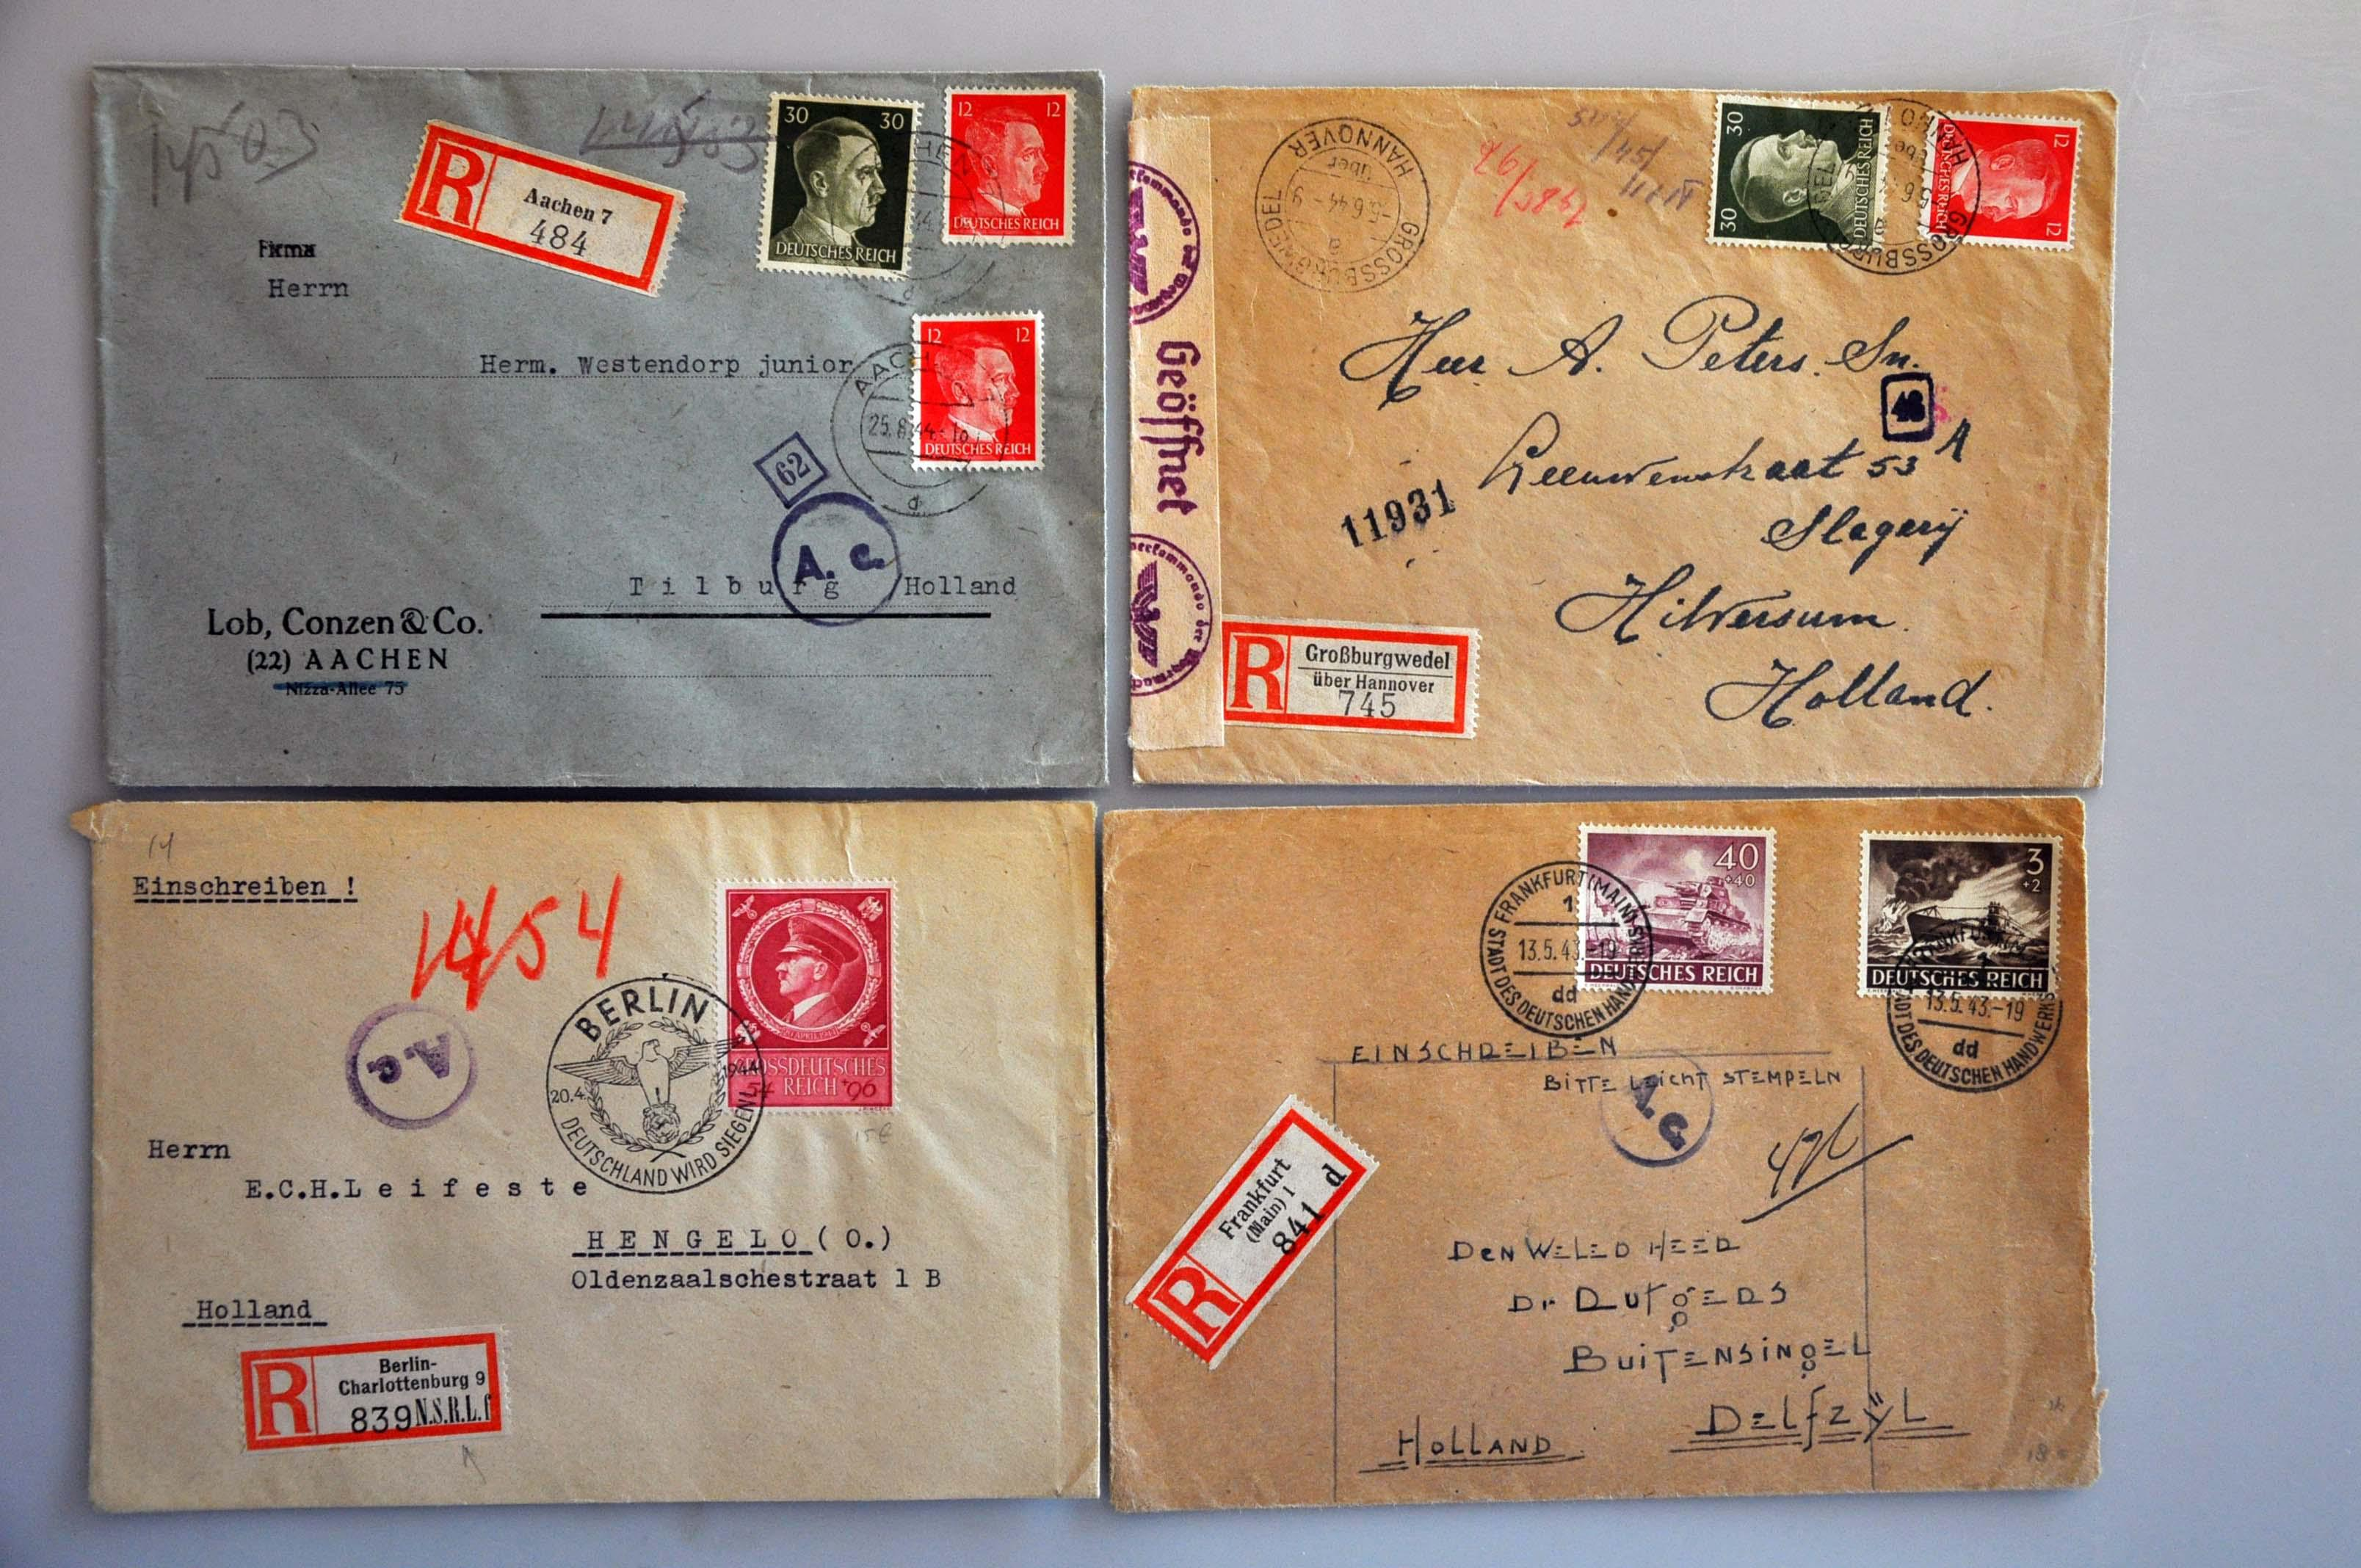 Lot 1015 - Topics and Miscellaneous world war II -  Corinphila veilingen Auction 235: Postal History WW2 - The Stefan Drukker Collection